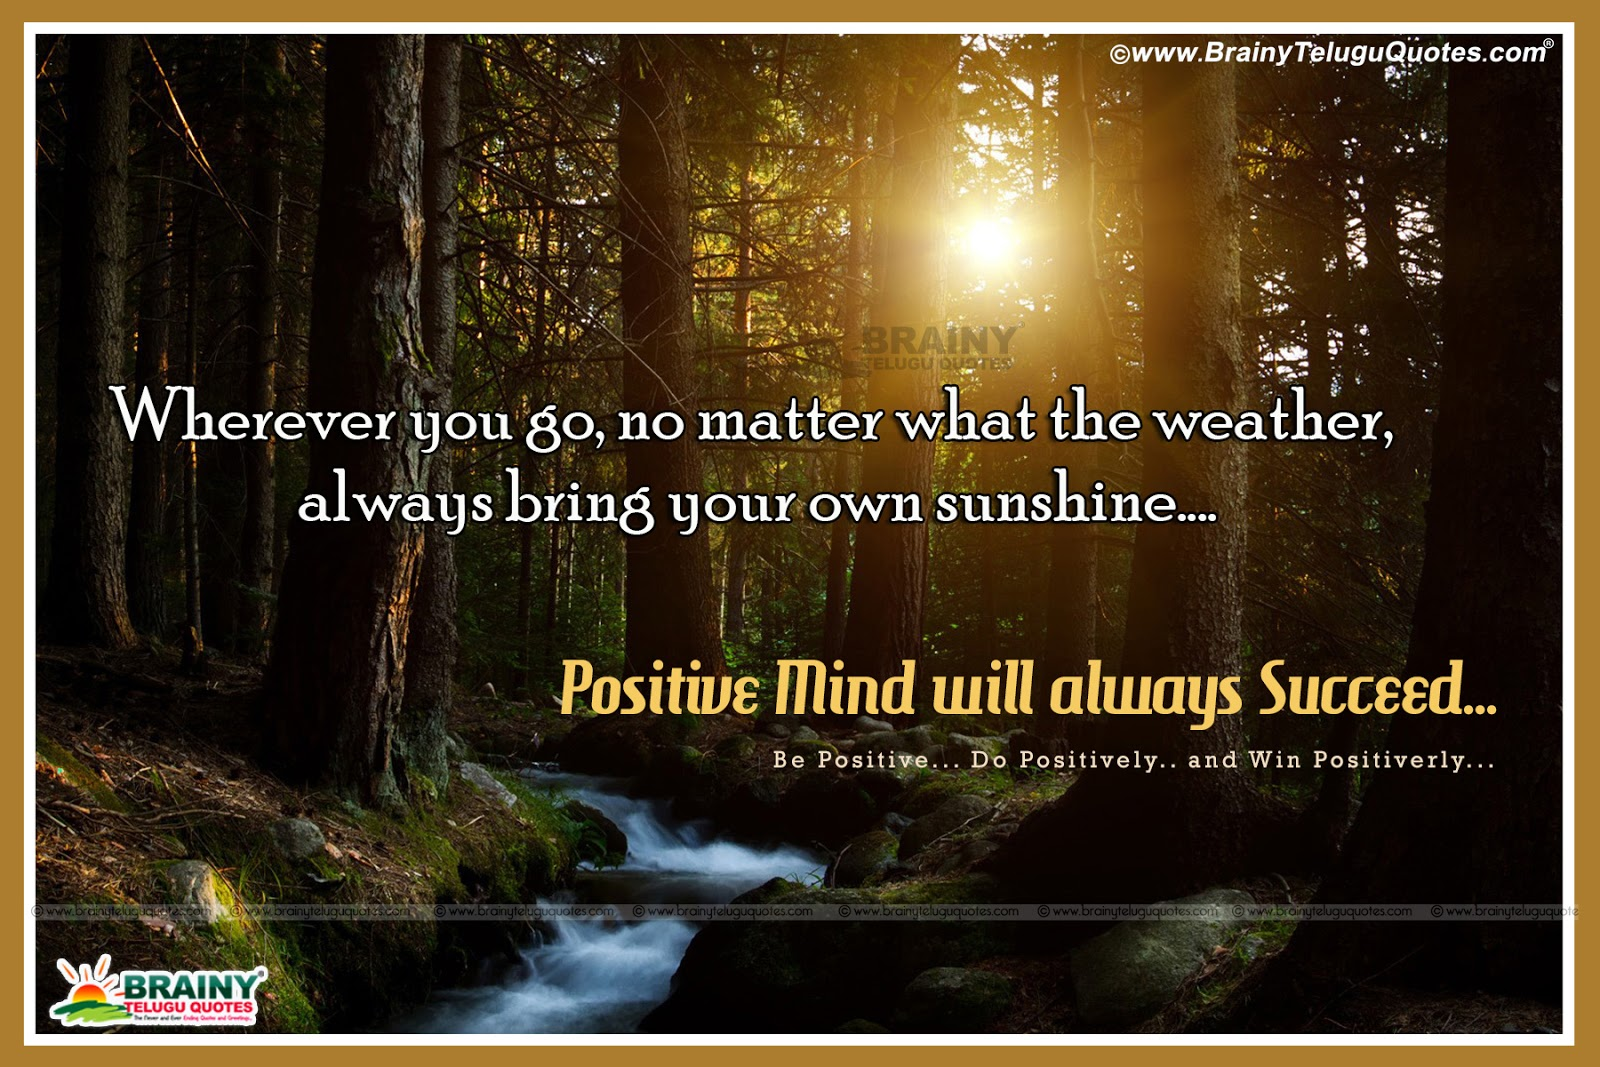 English Quotes About Positive Attitude Valuable Hd Wallpapers In